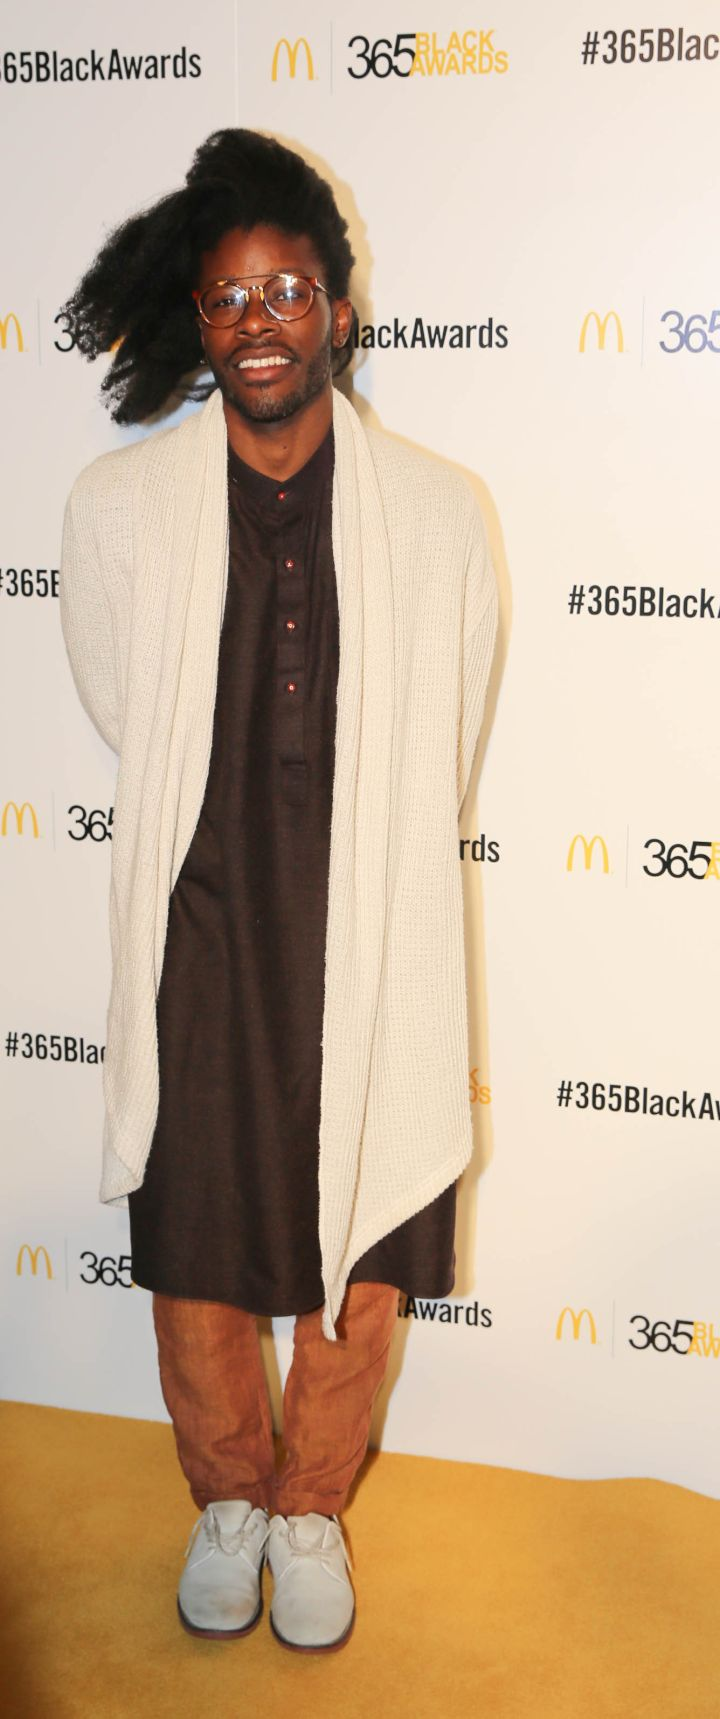 Jesse Boykins III walks the golden carpet at the McDonald's 365Black Awards in New Orleans.